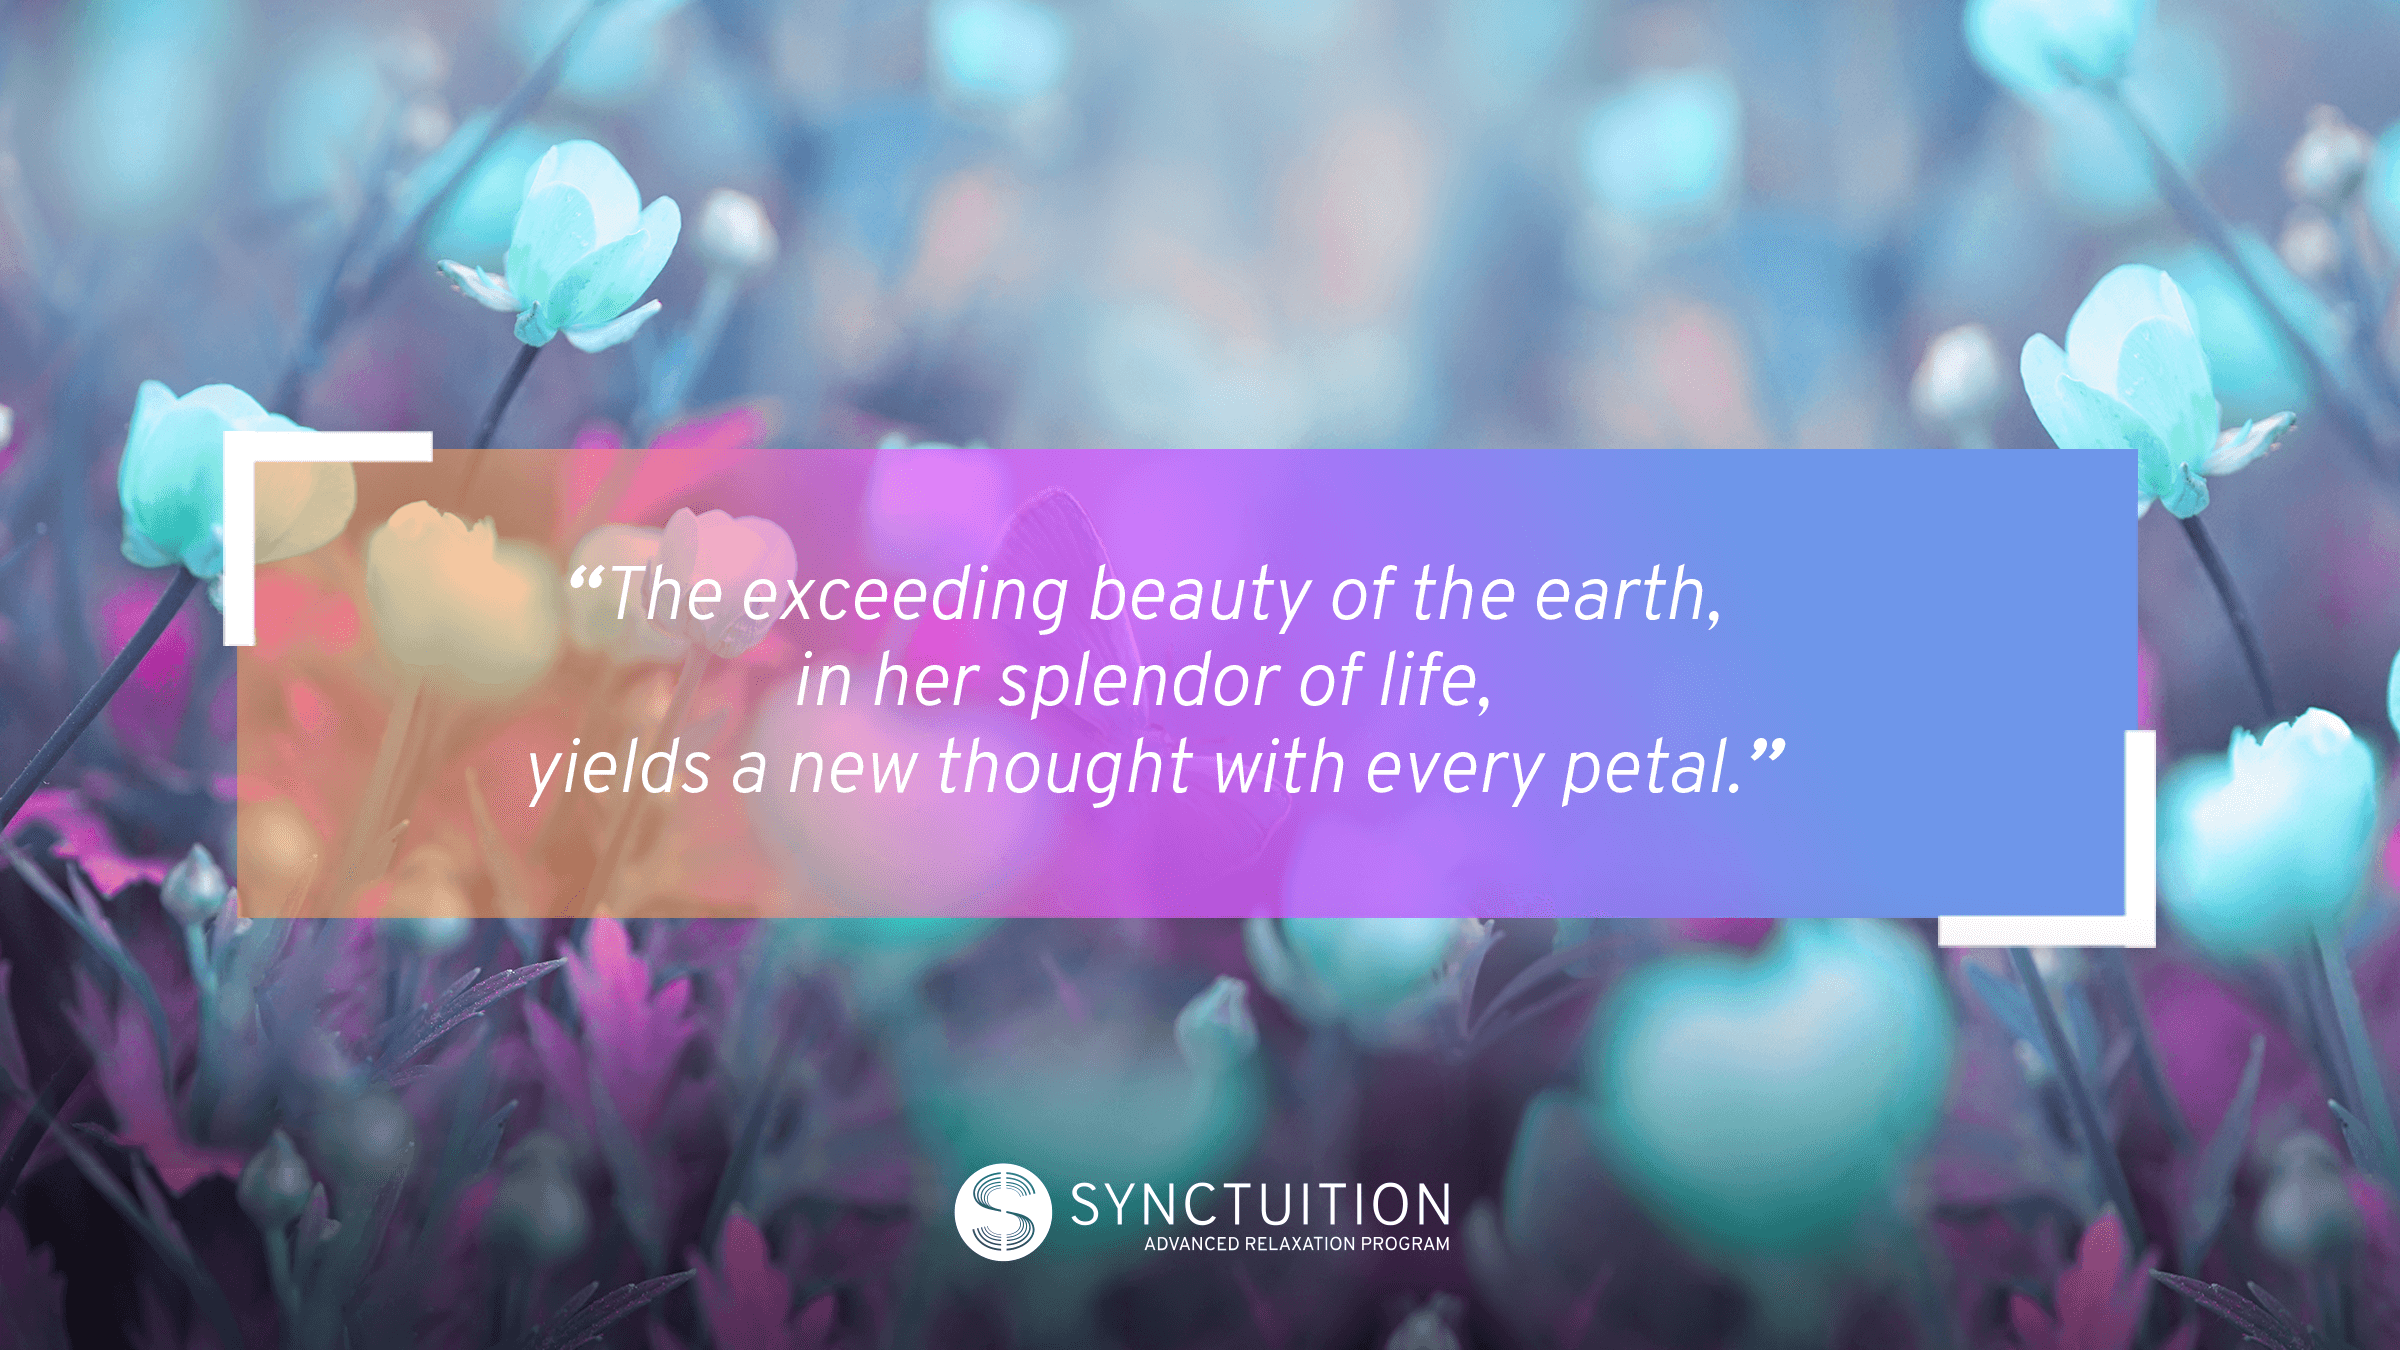 The beauty of nature sounds resonates deep within the mind.